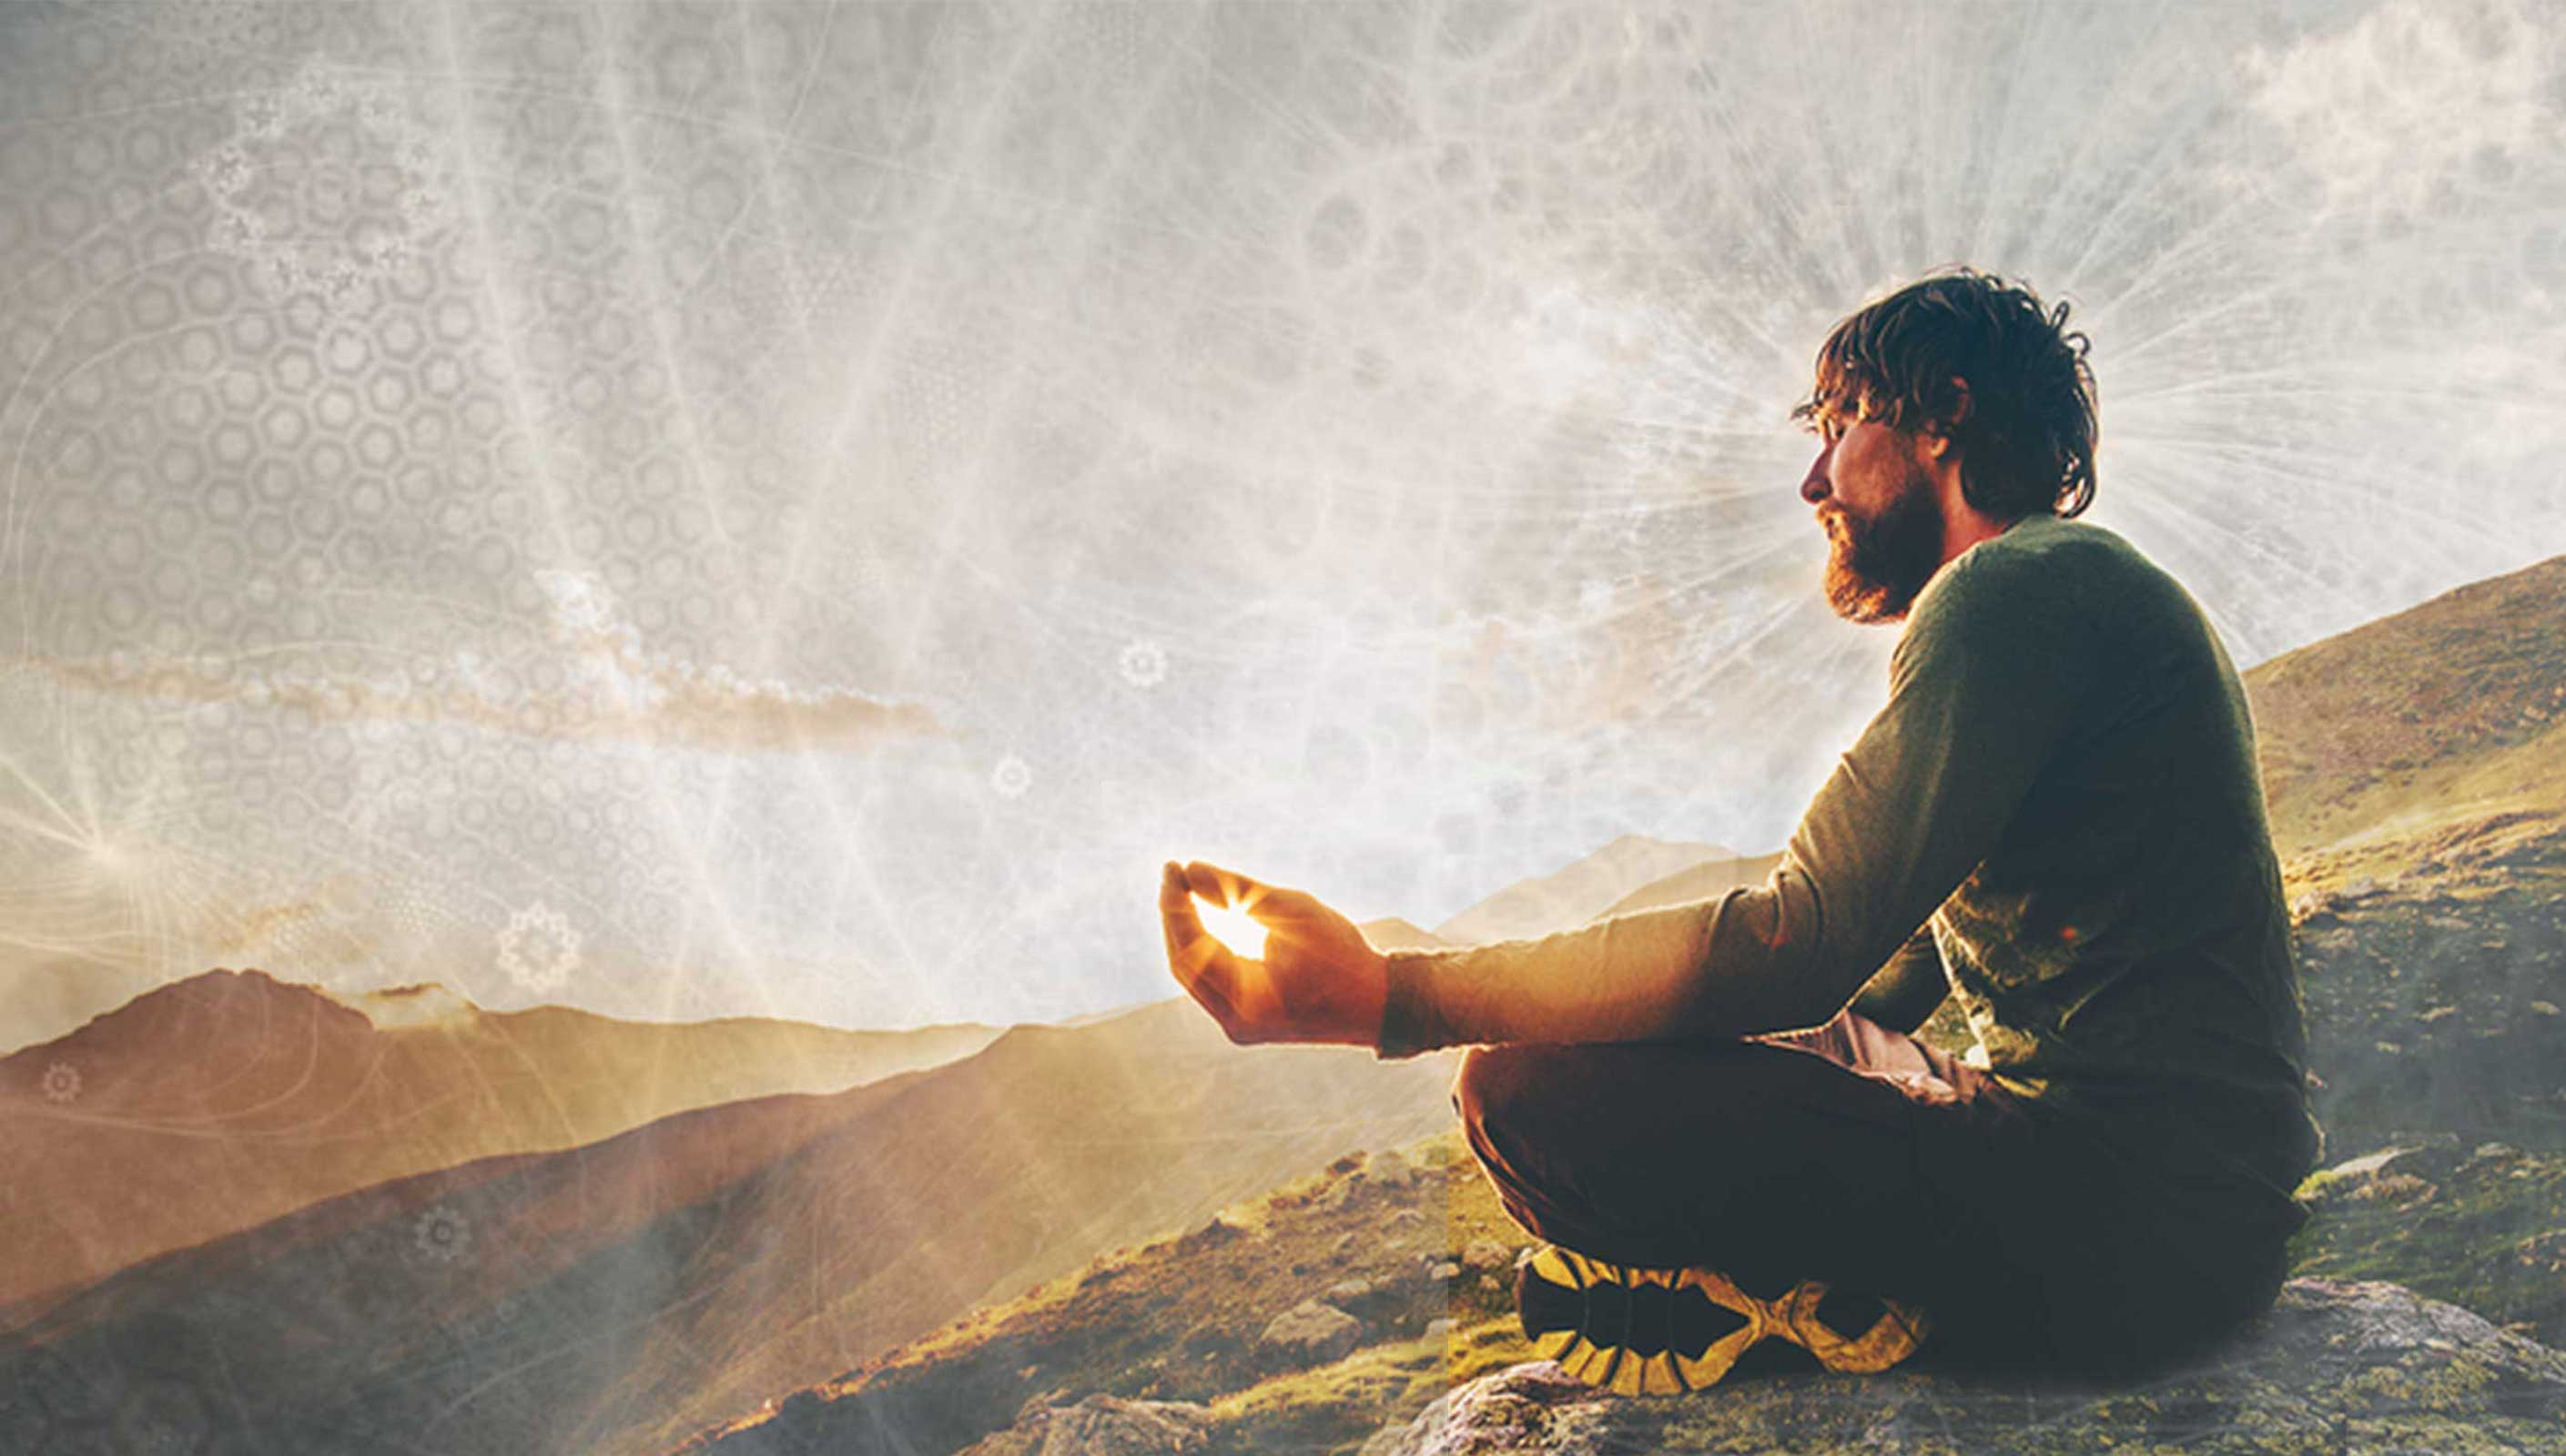 A simple lifestyle - Man meditating on a mountain